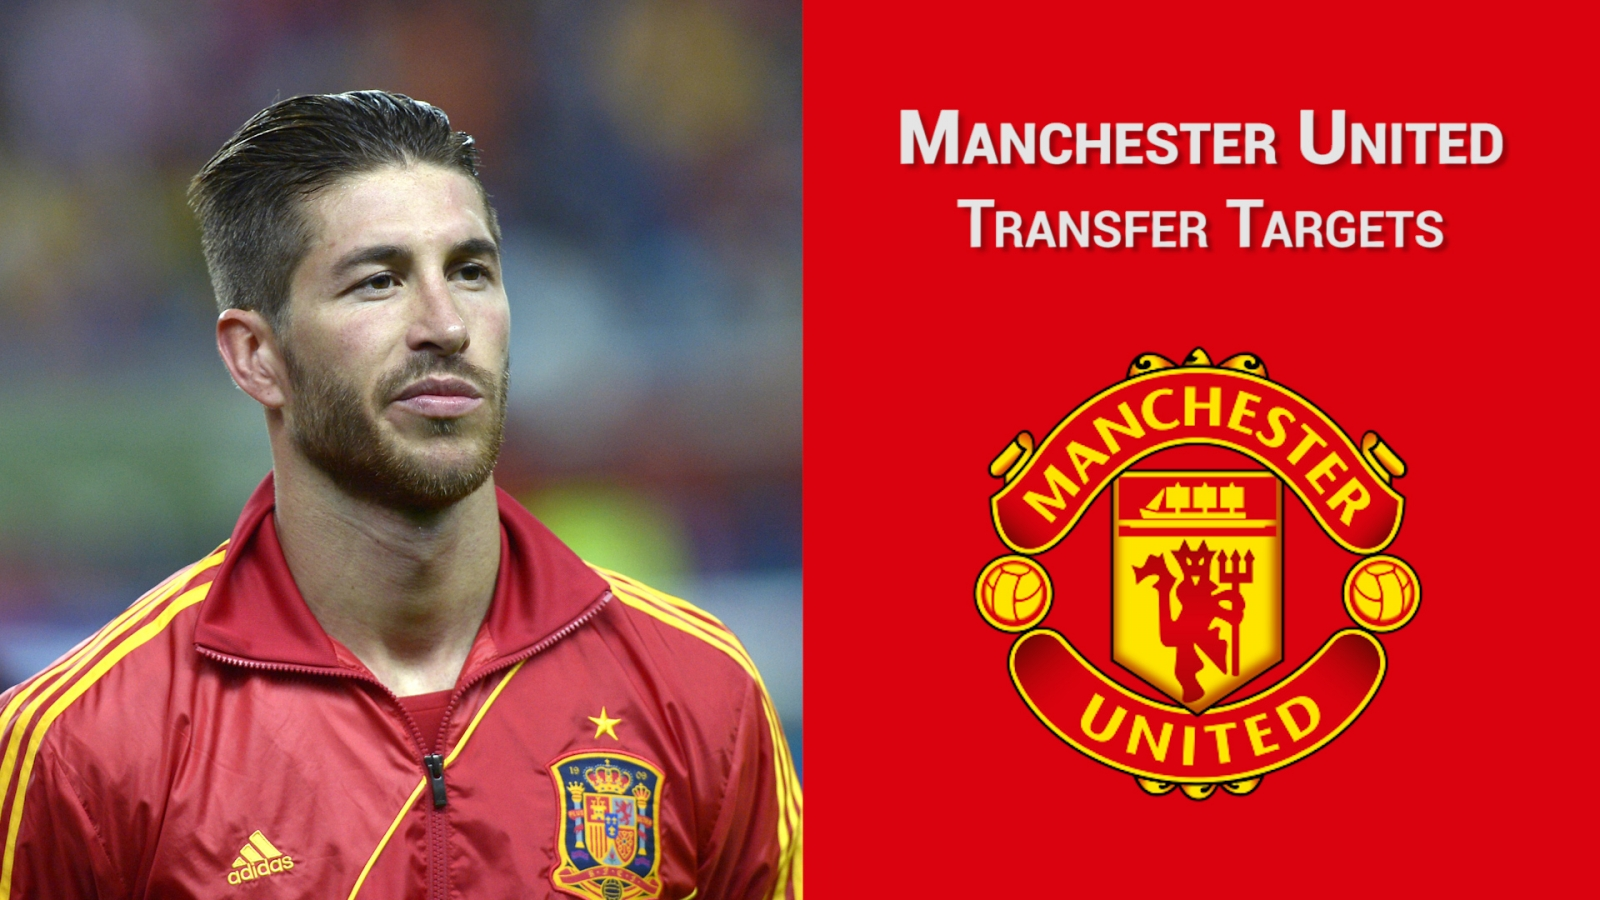 Manchester United Transfer